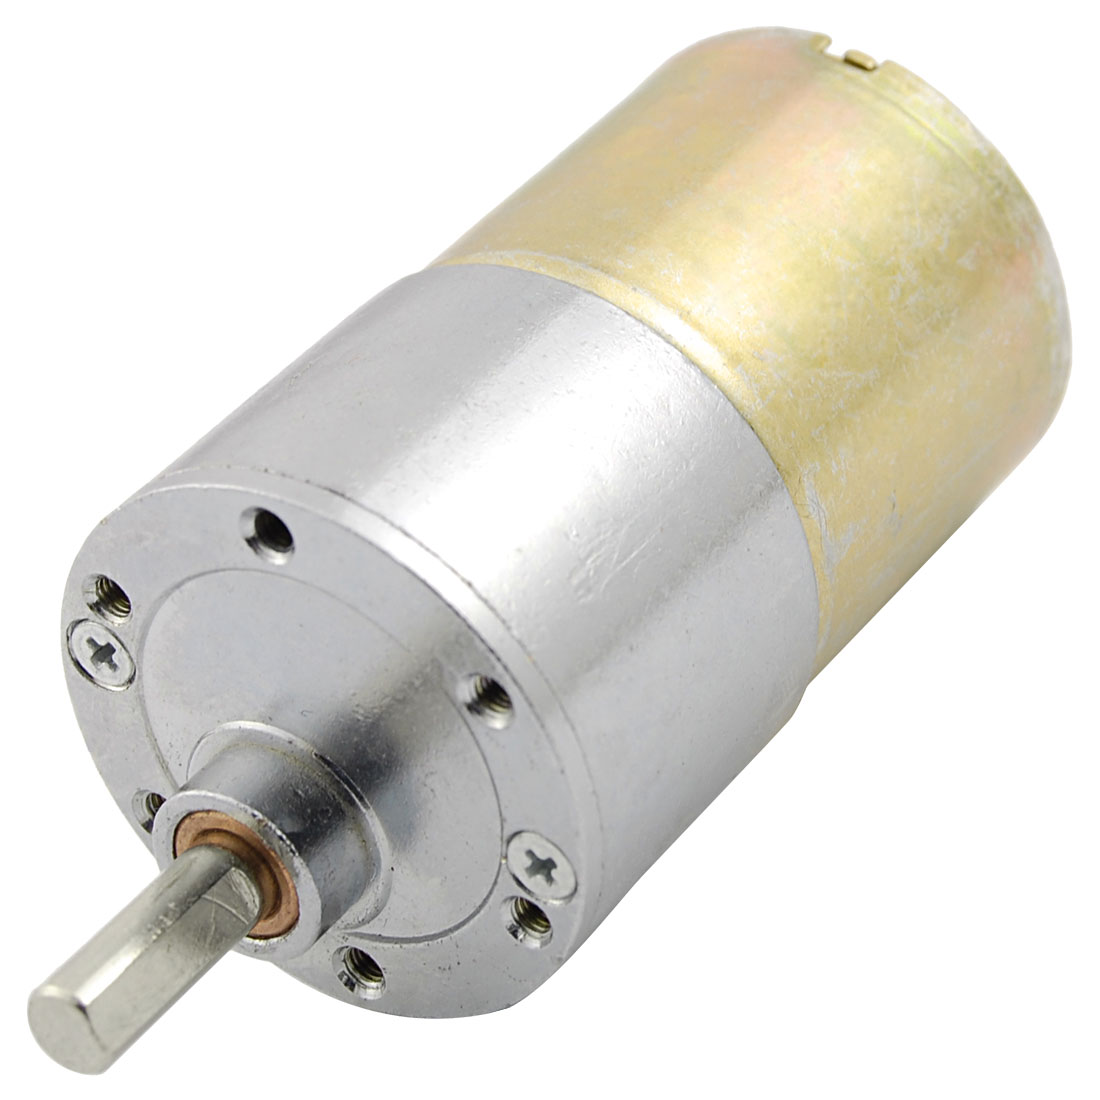 DC 12V 130mA 80RPM 2.6Kg-cm High Torque Permanent Magnetic DC Gear Motor